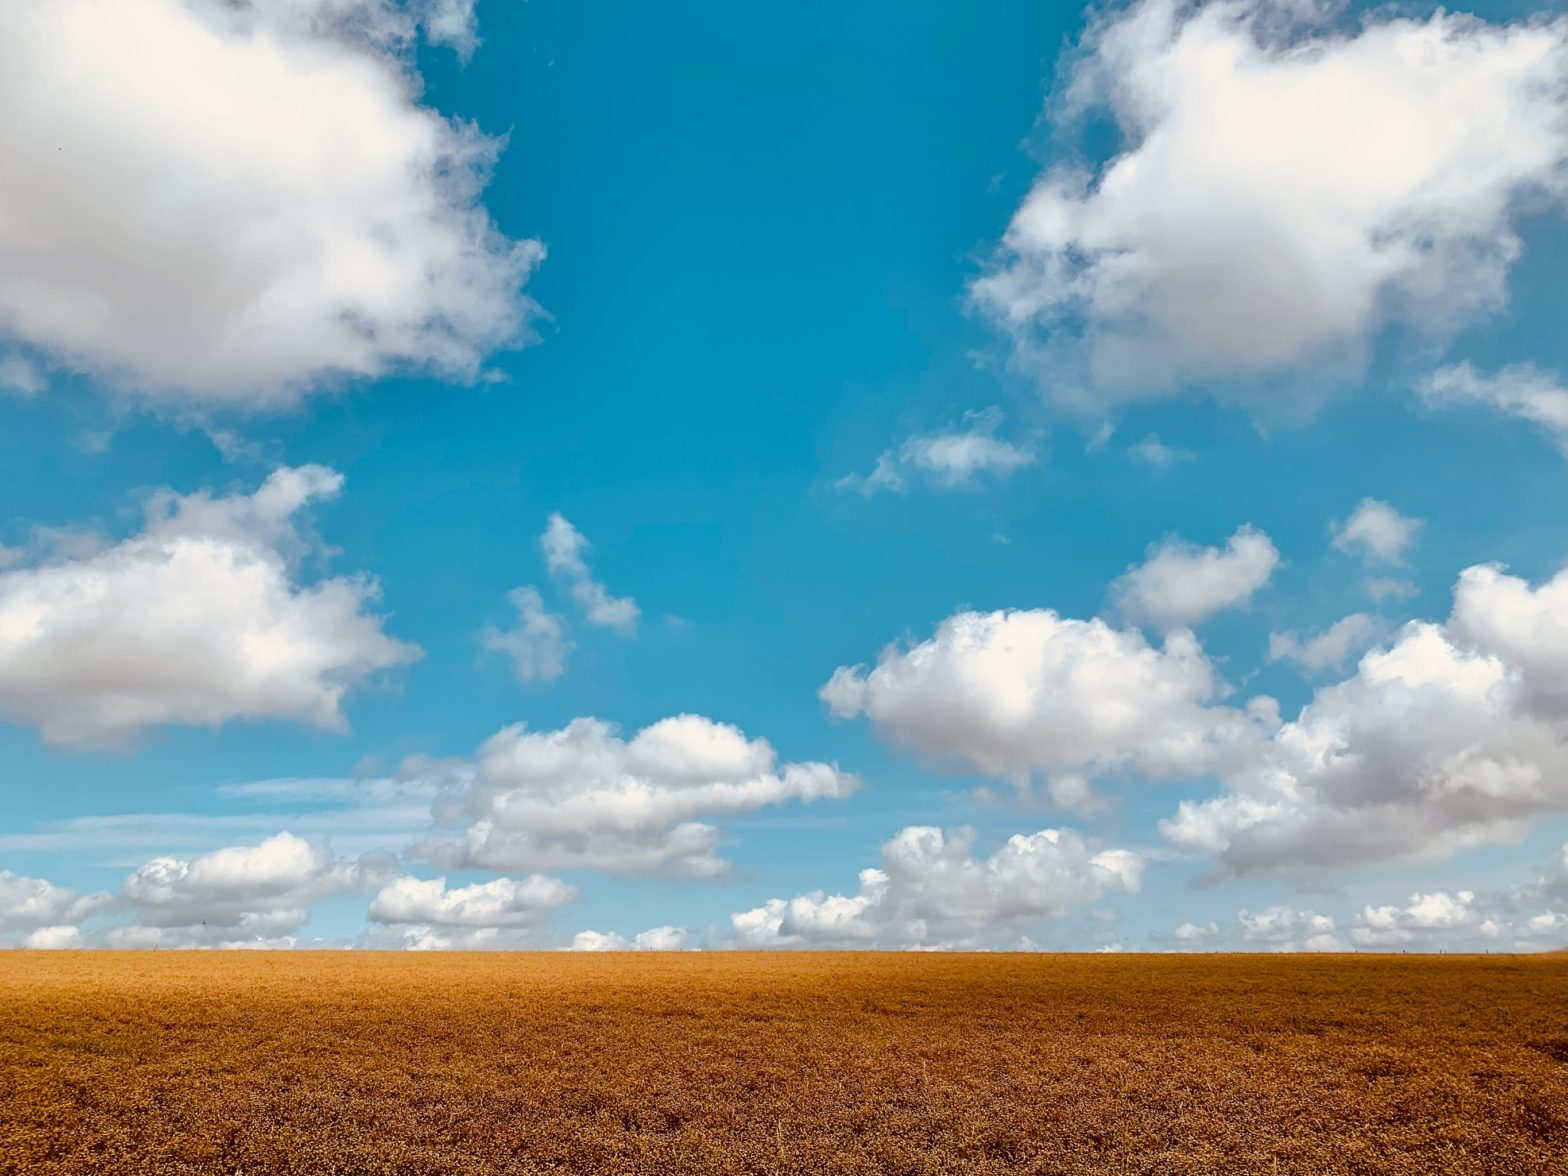 Clouds in the bright blue sky over an orange field with a cereal crop ready for harvest